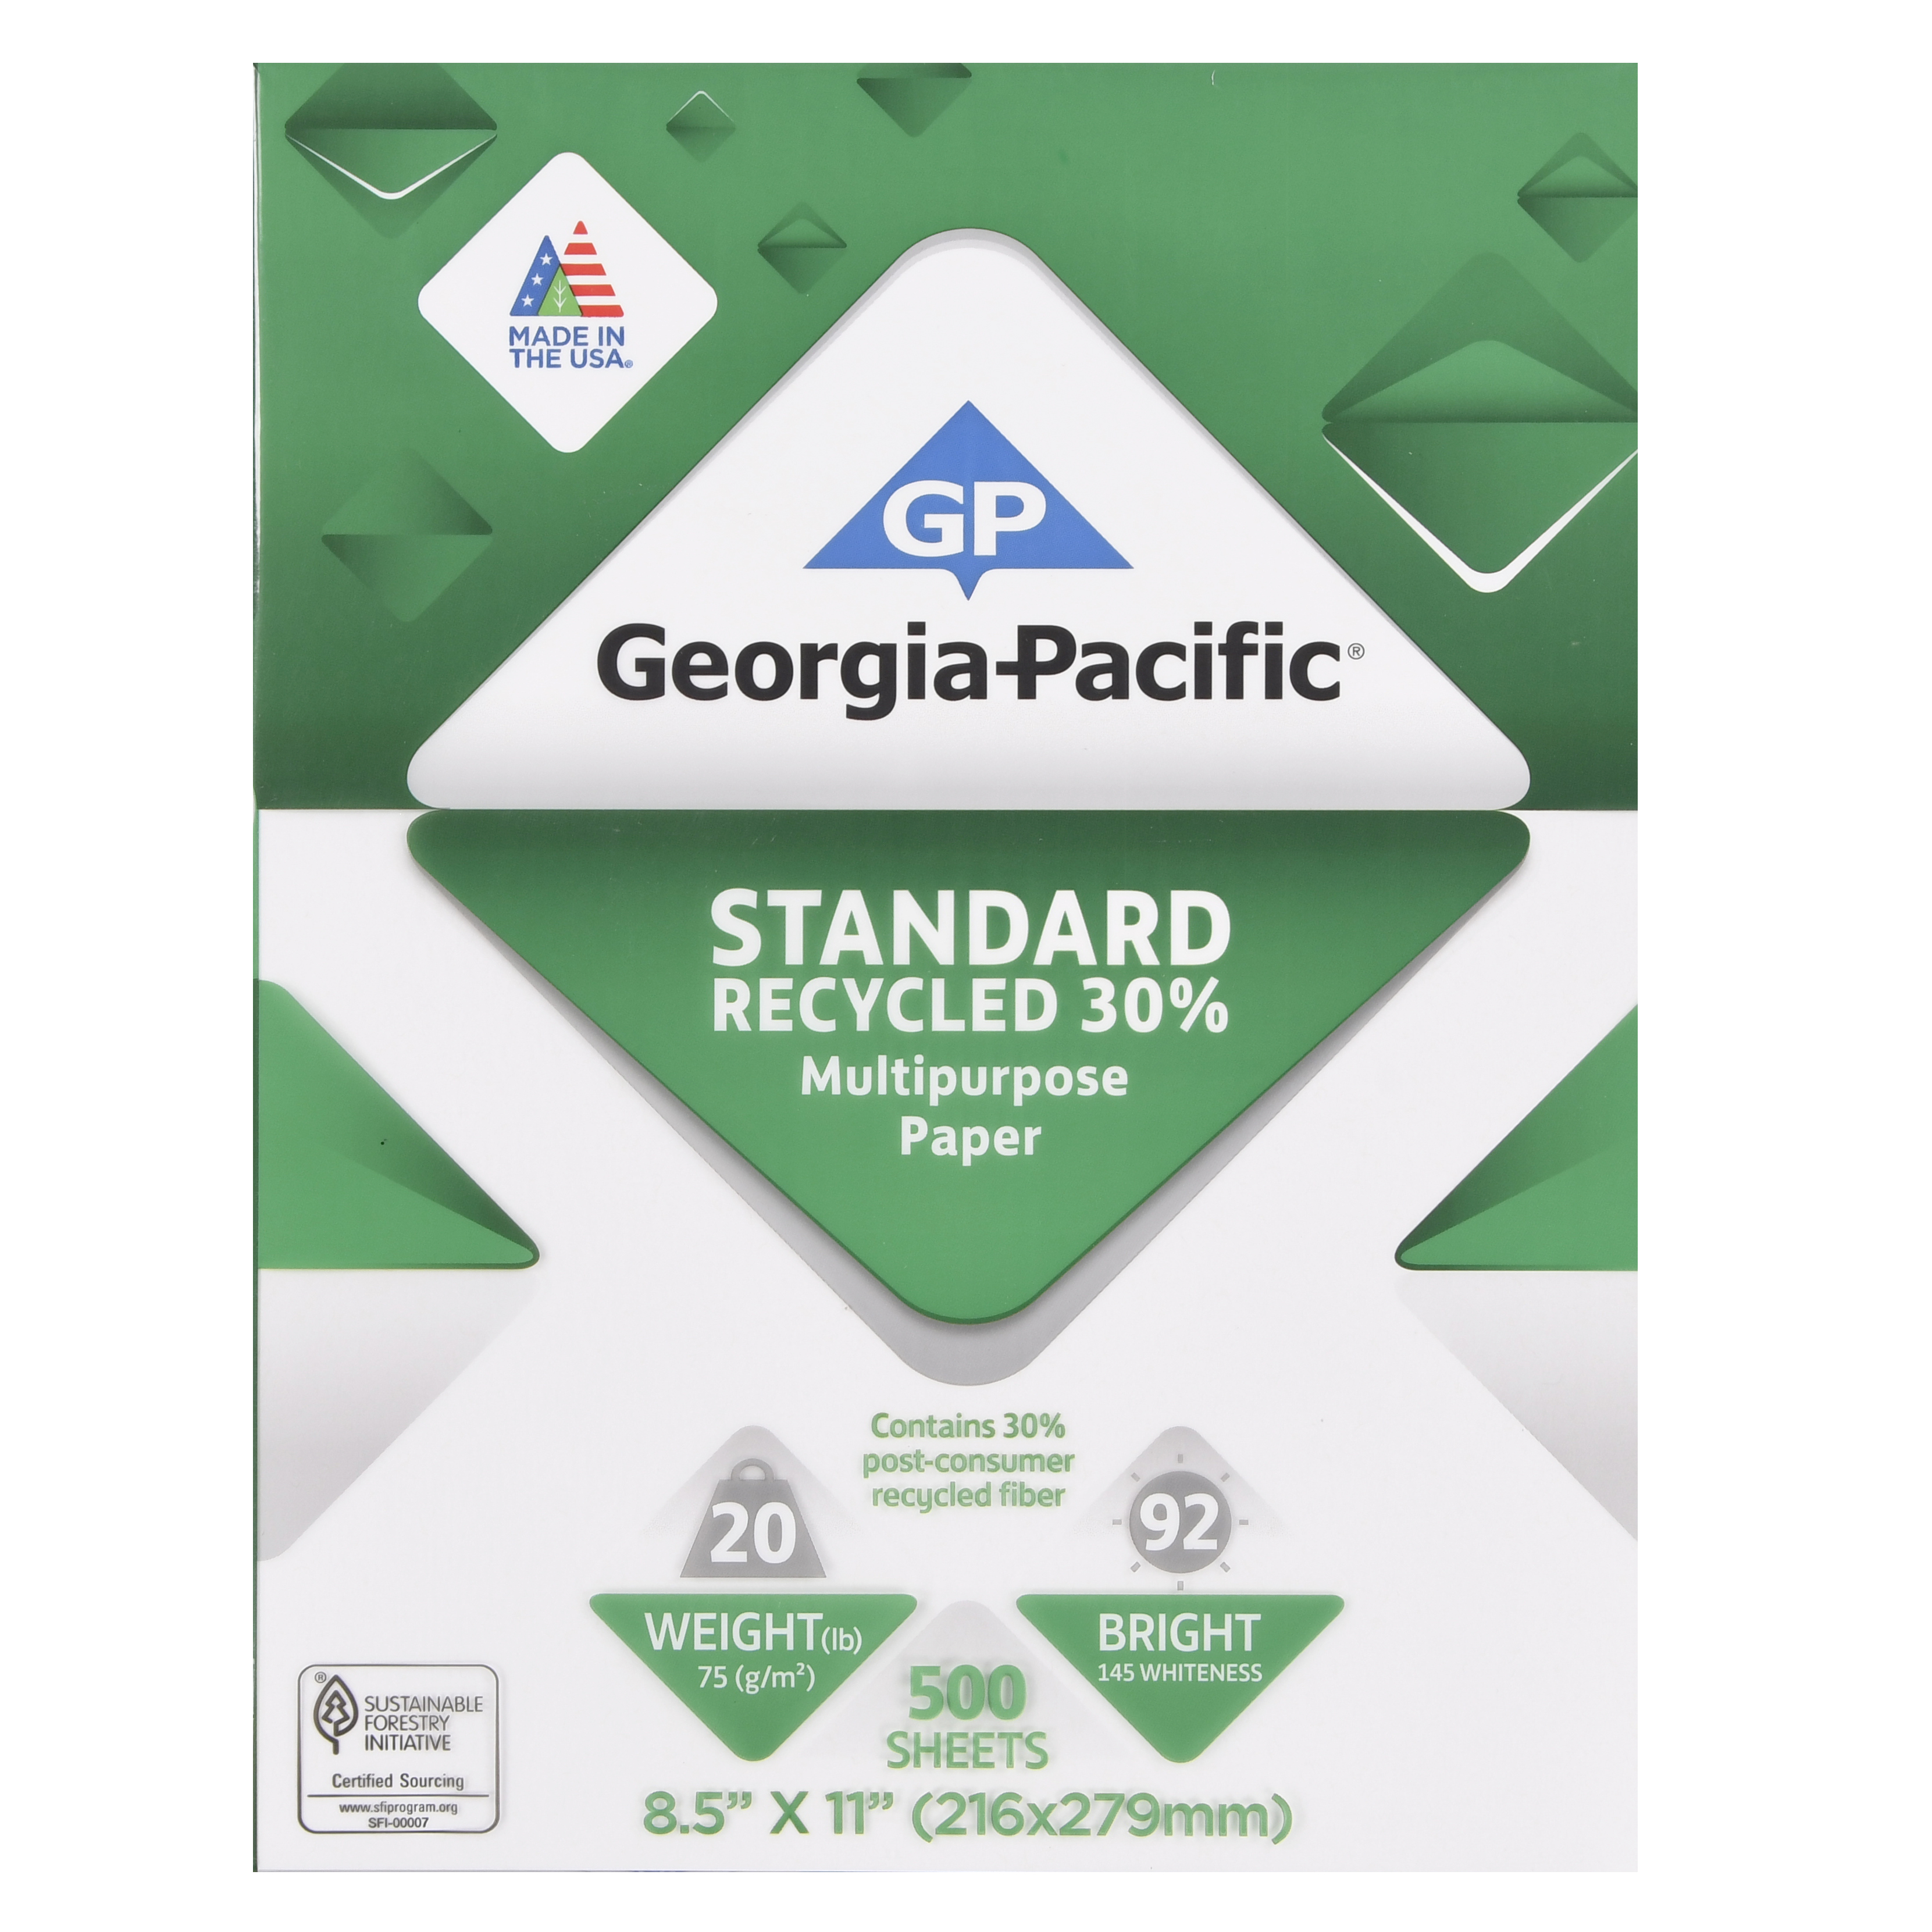 "Georgia-Pacific Standard Recycled 30 Percent Multipurpose Paper, 8.5"" x 11"", 20 lb, 92 Brightness, 500 Sheets"